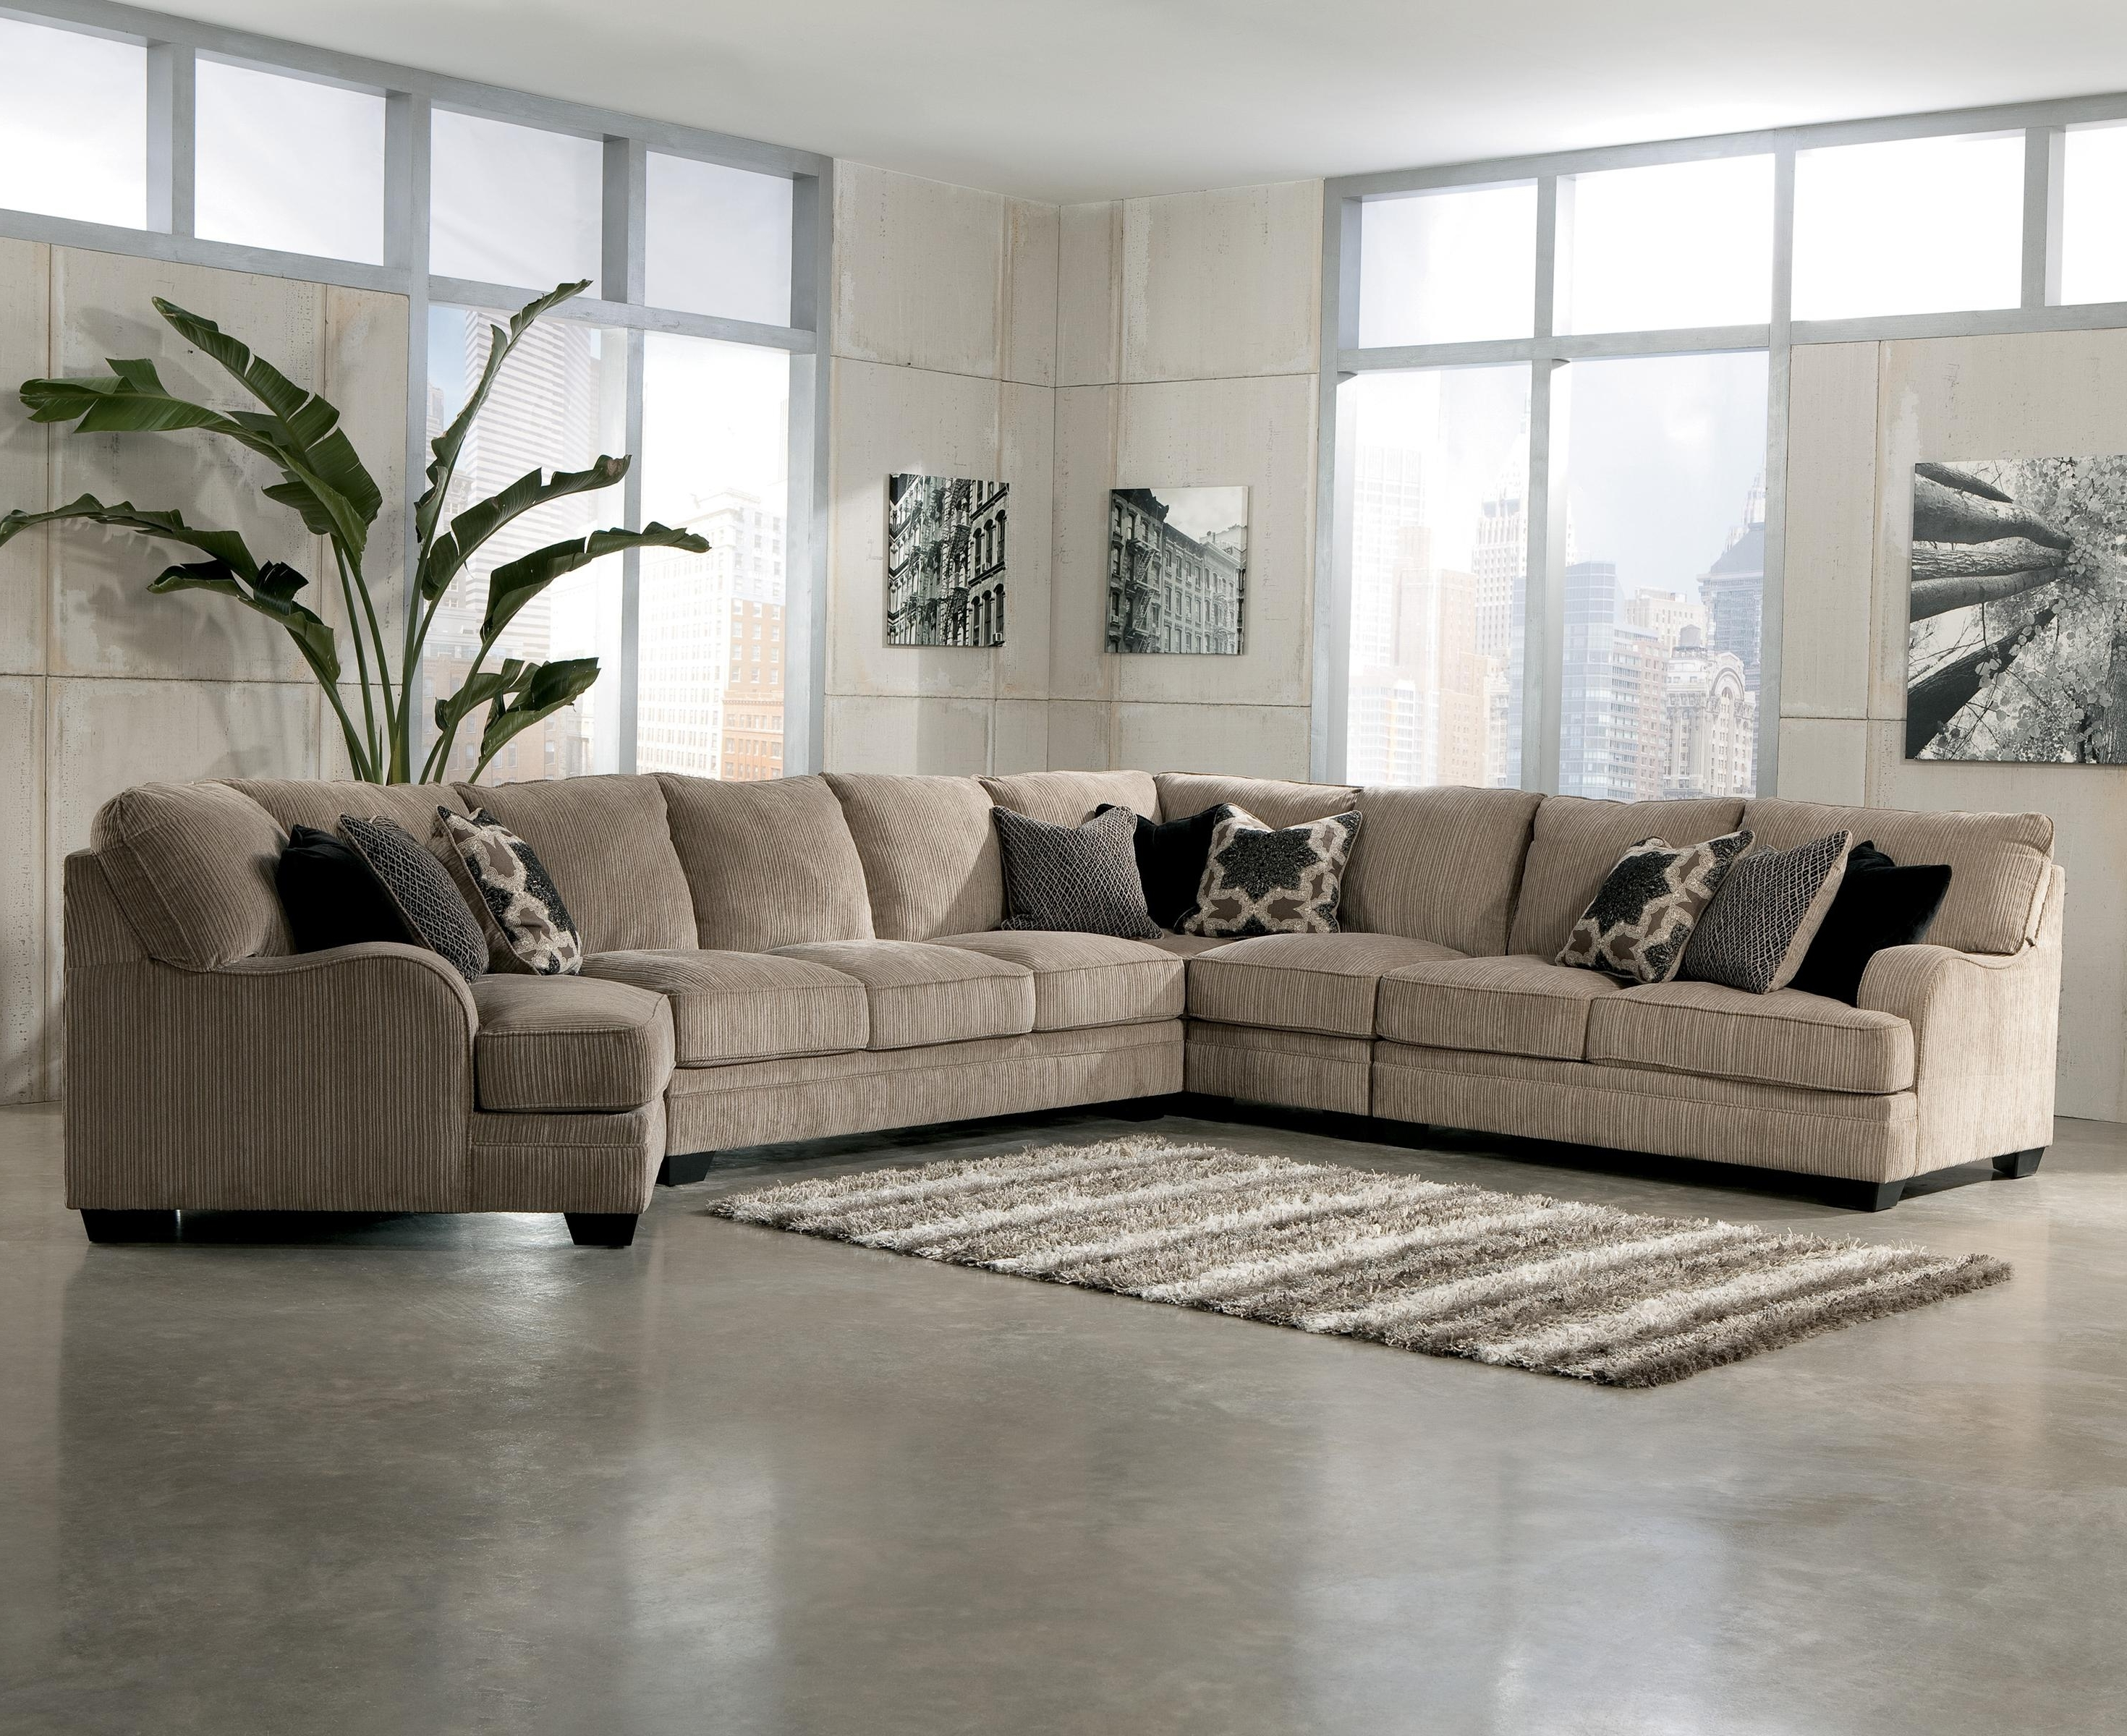 2017 Comfortable Cuddler Sofa For Elegant Living Room Sofas Design Inside Large Comfortable Sectional Sofas (View 13 of 15)